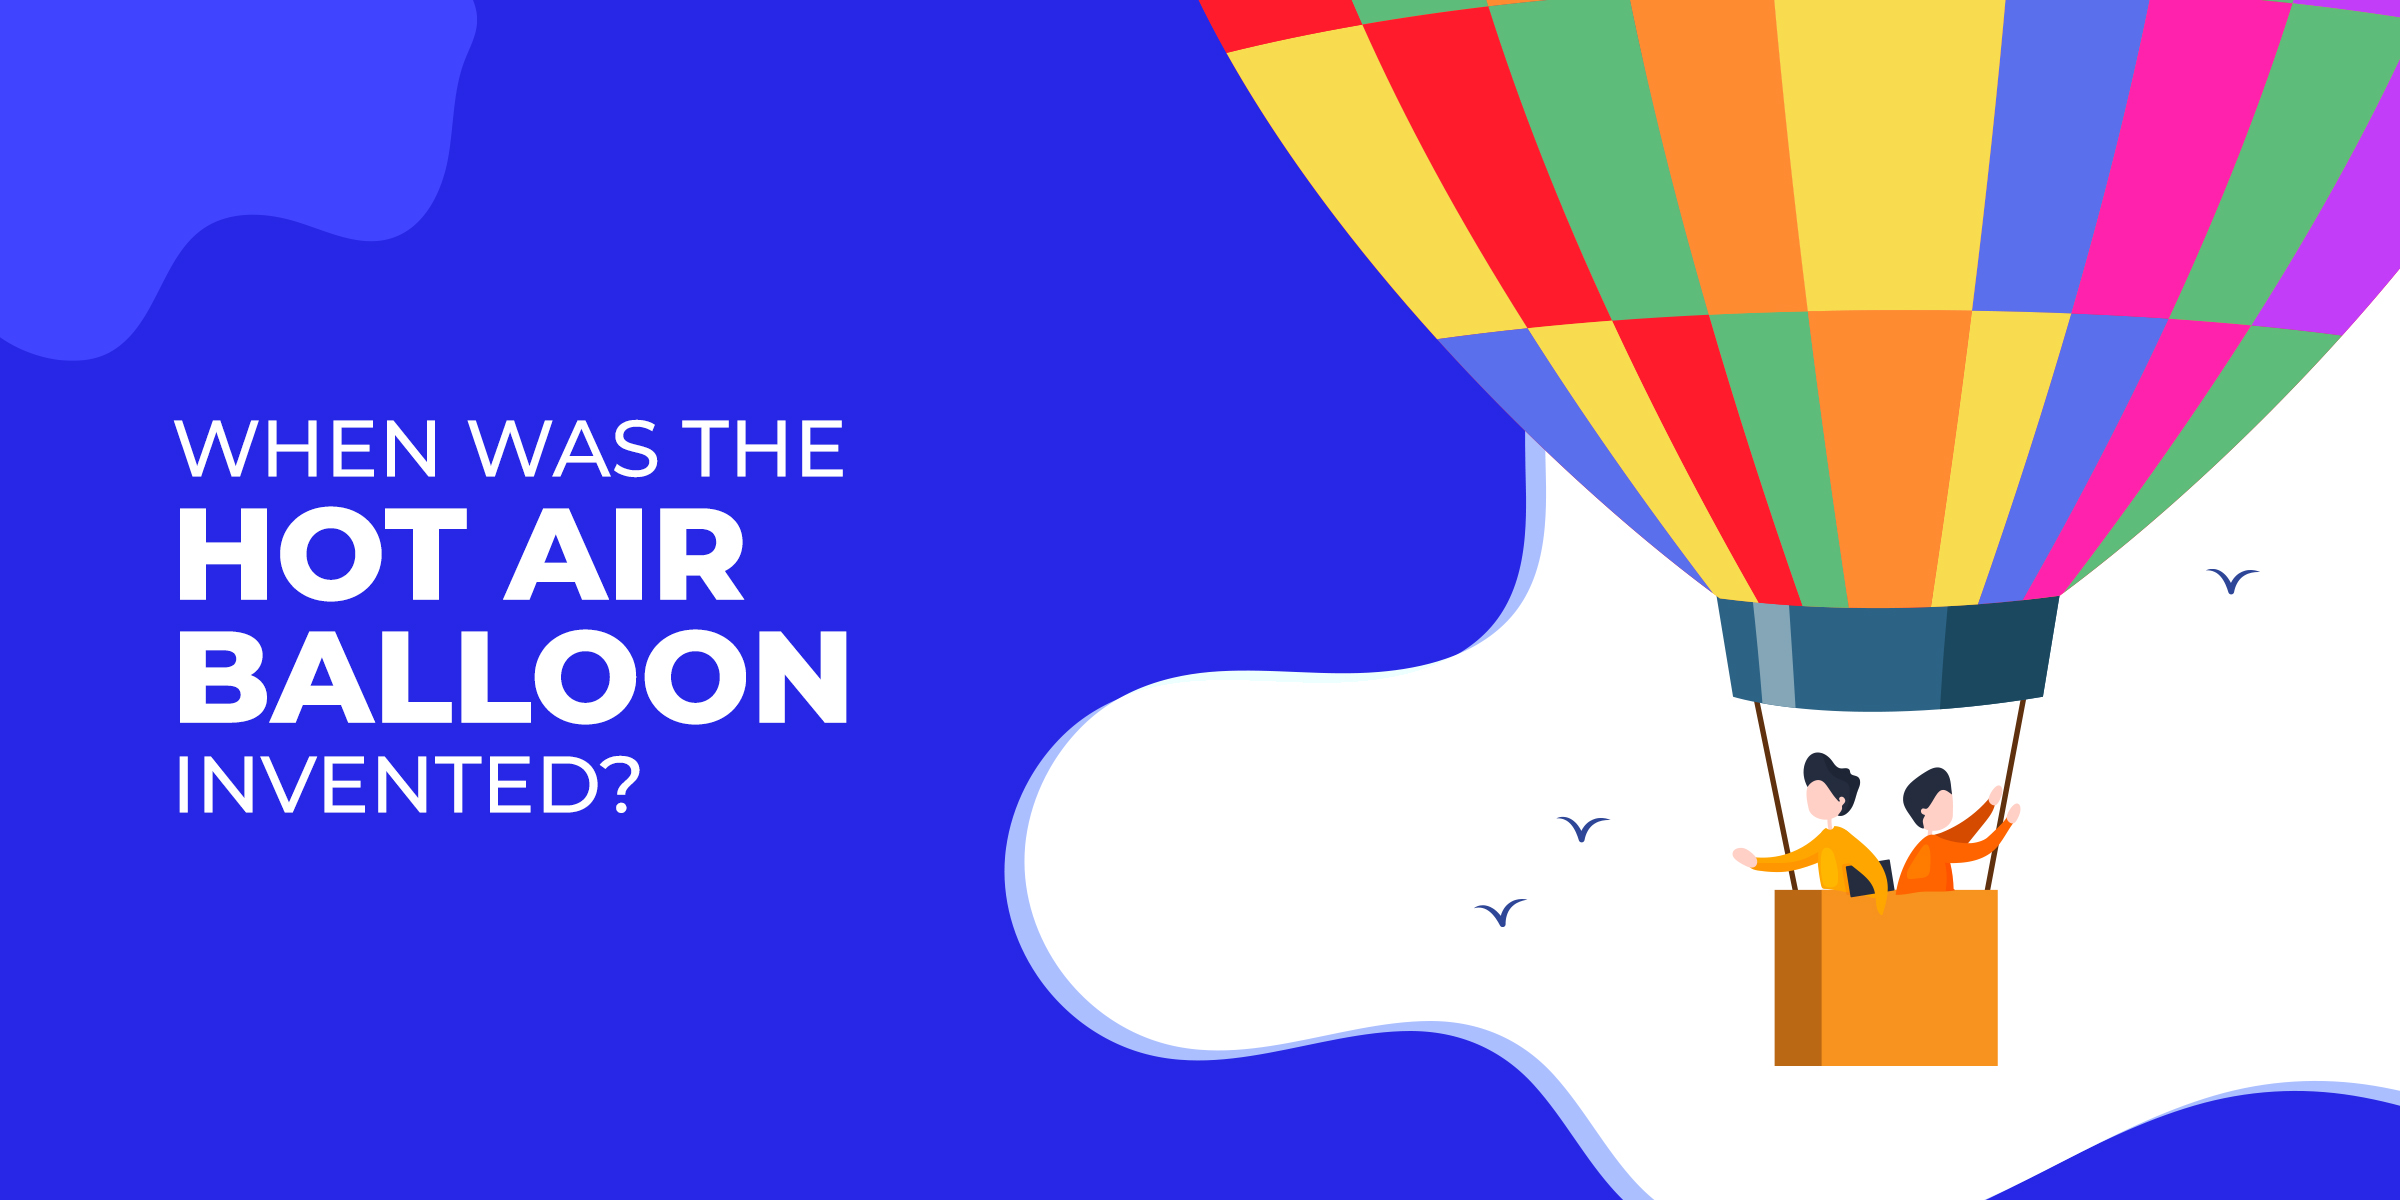 When was the hot air balloon invented?